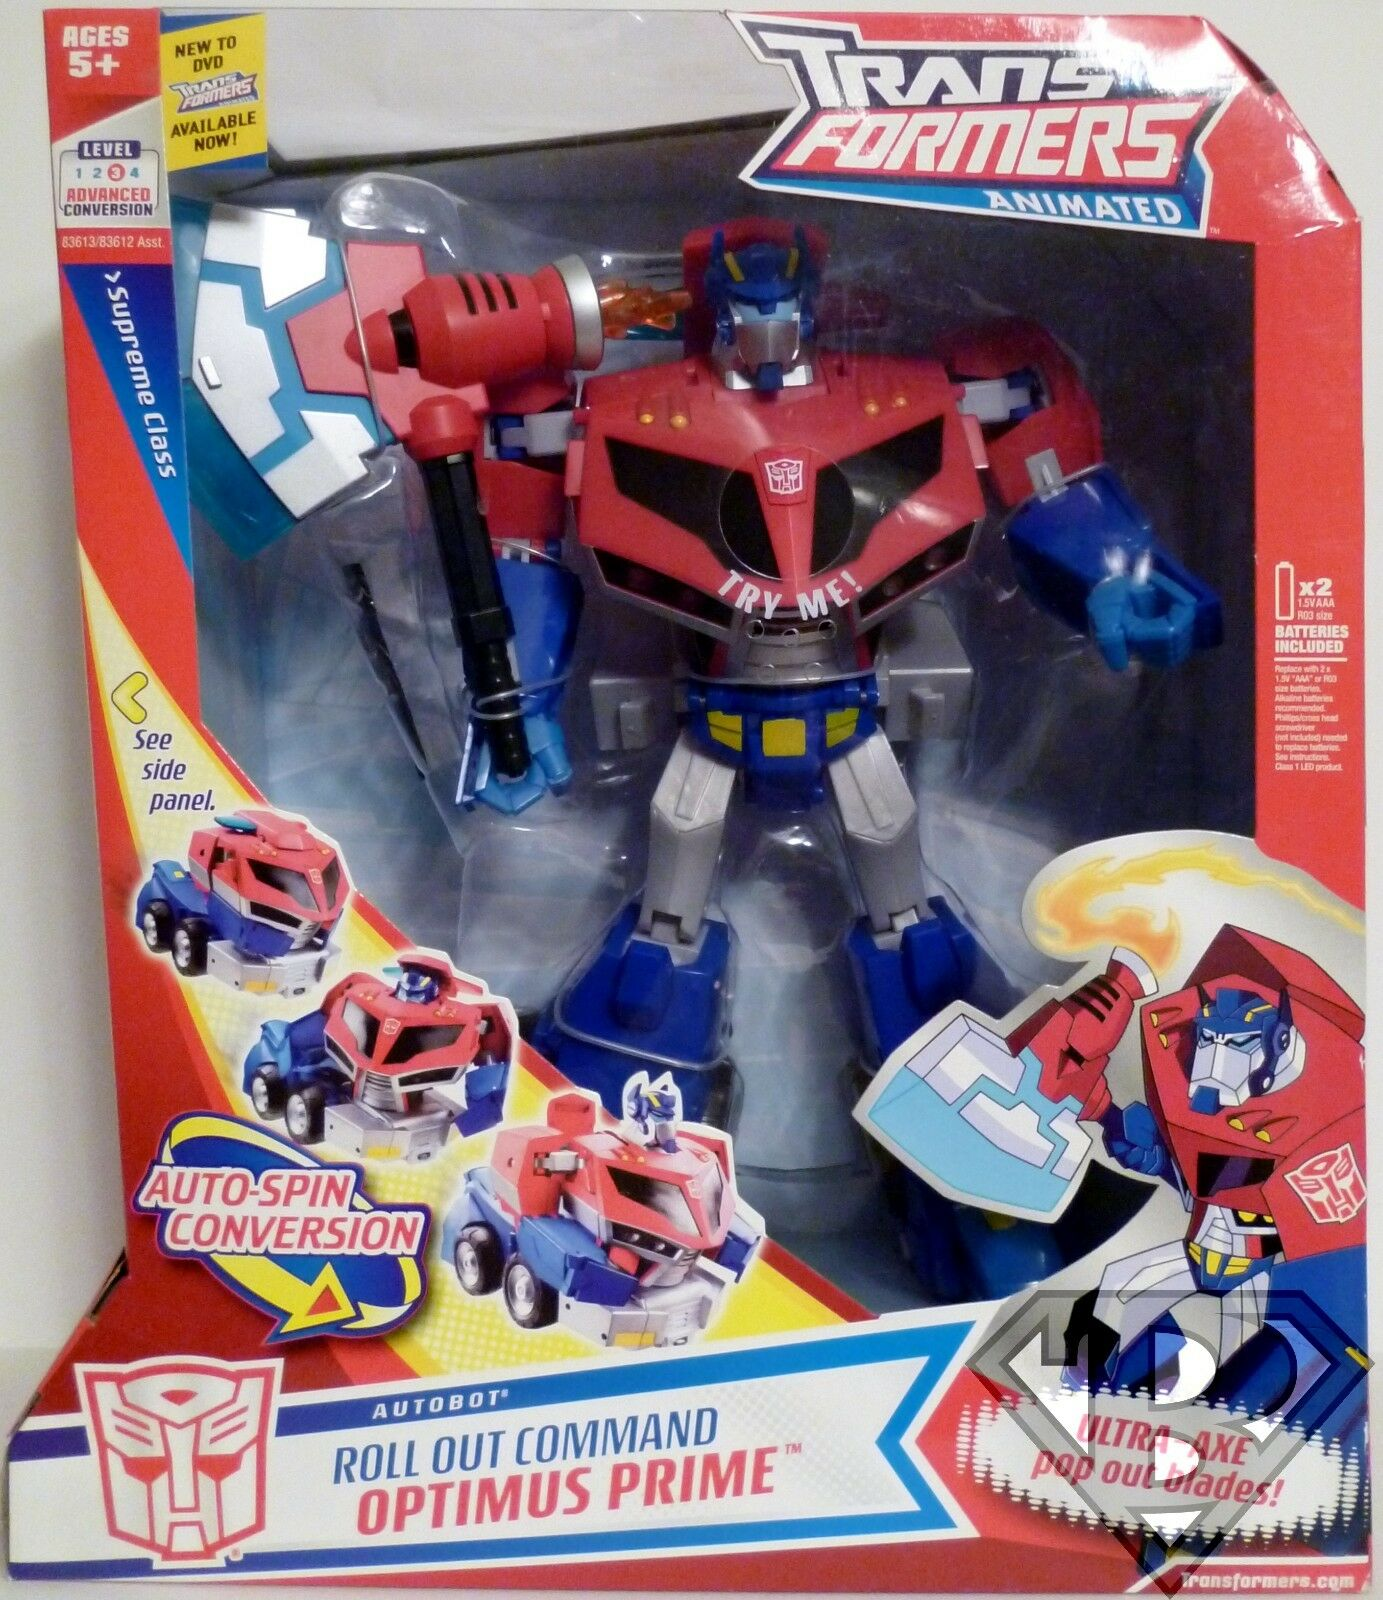 ROLL OUT COMMAND OPTIMUS PRIME Transformers Animated Supreme Class 12  inch 2008